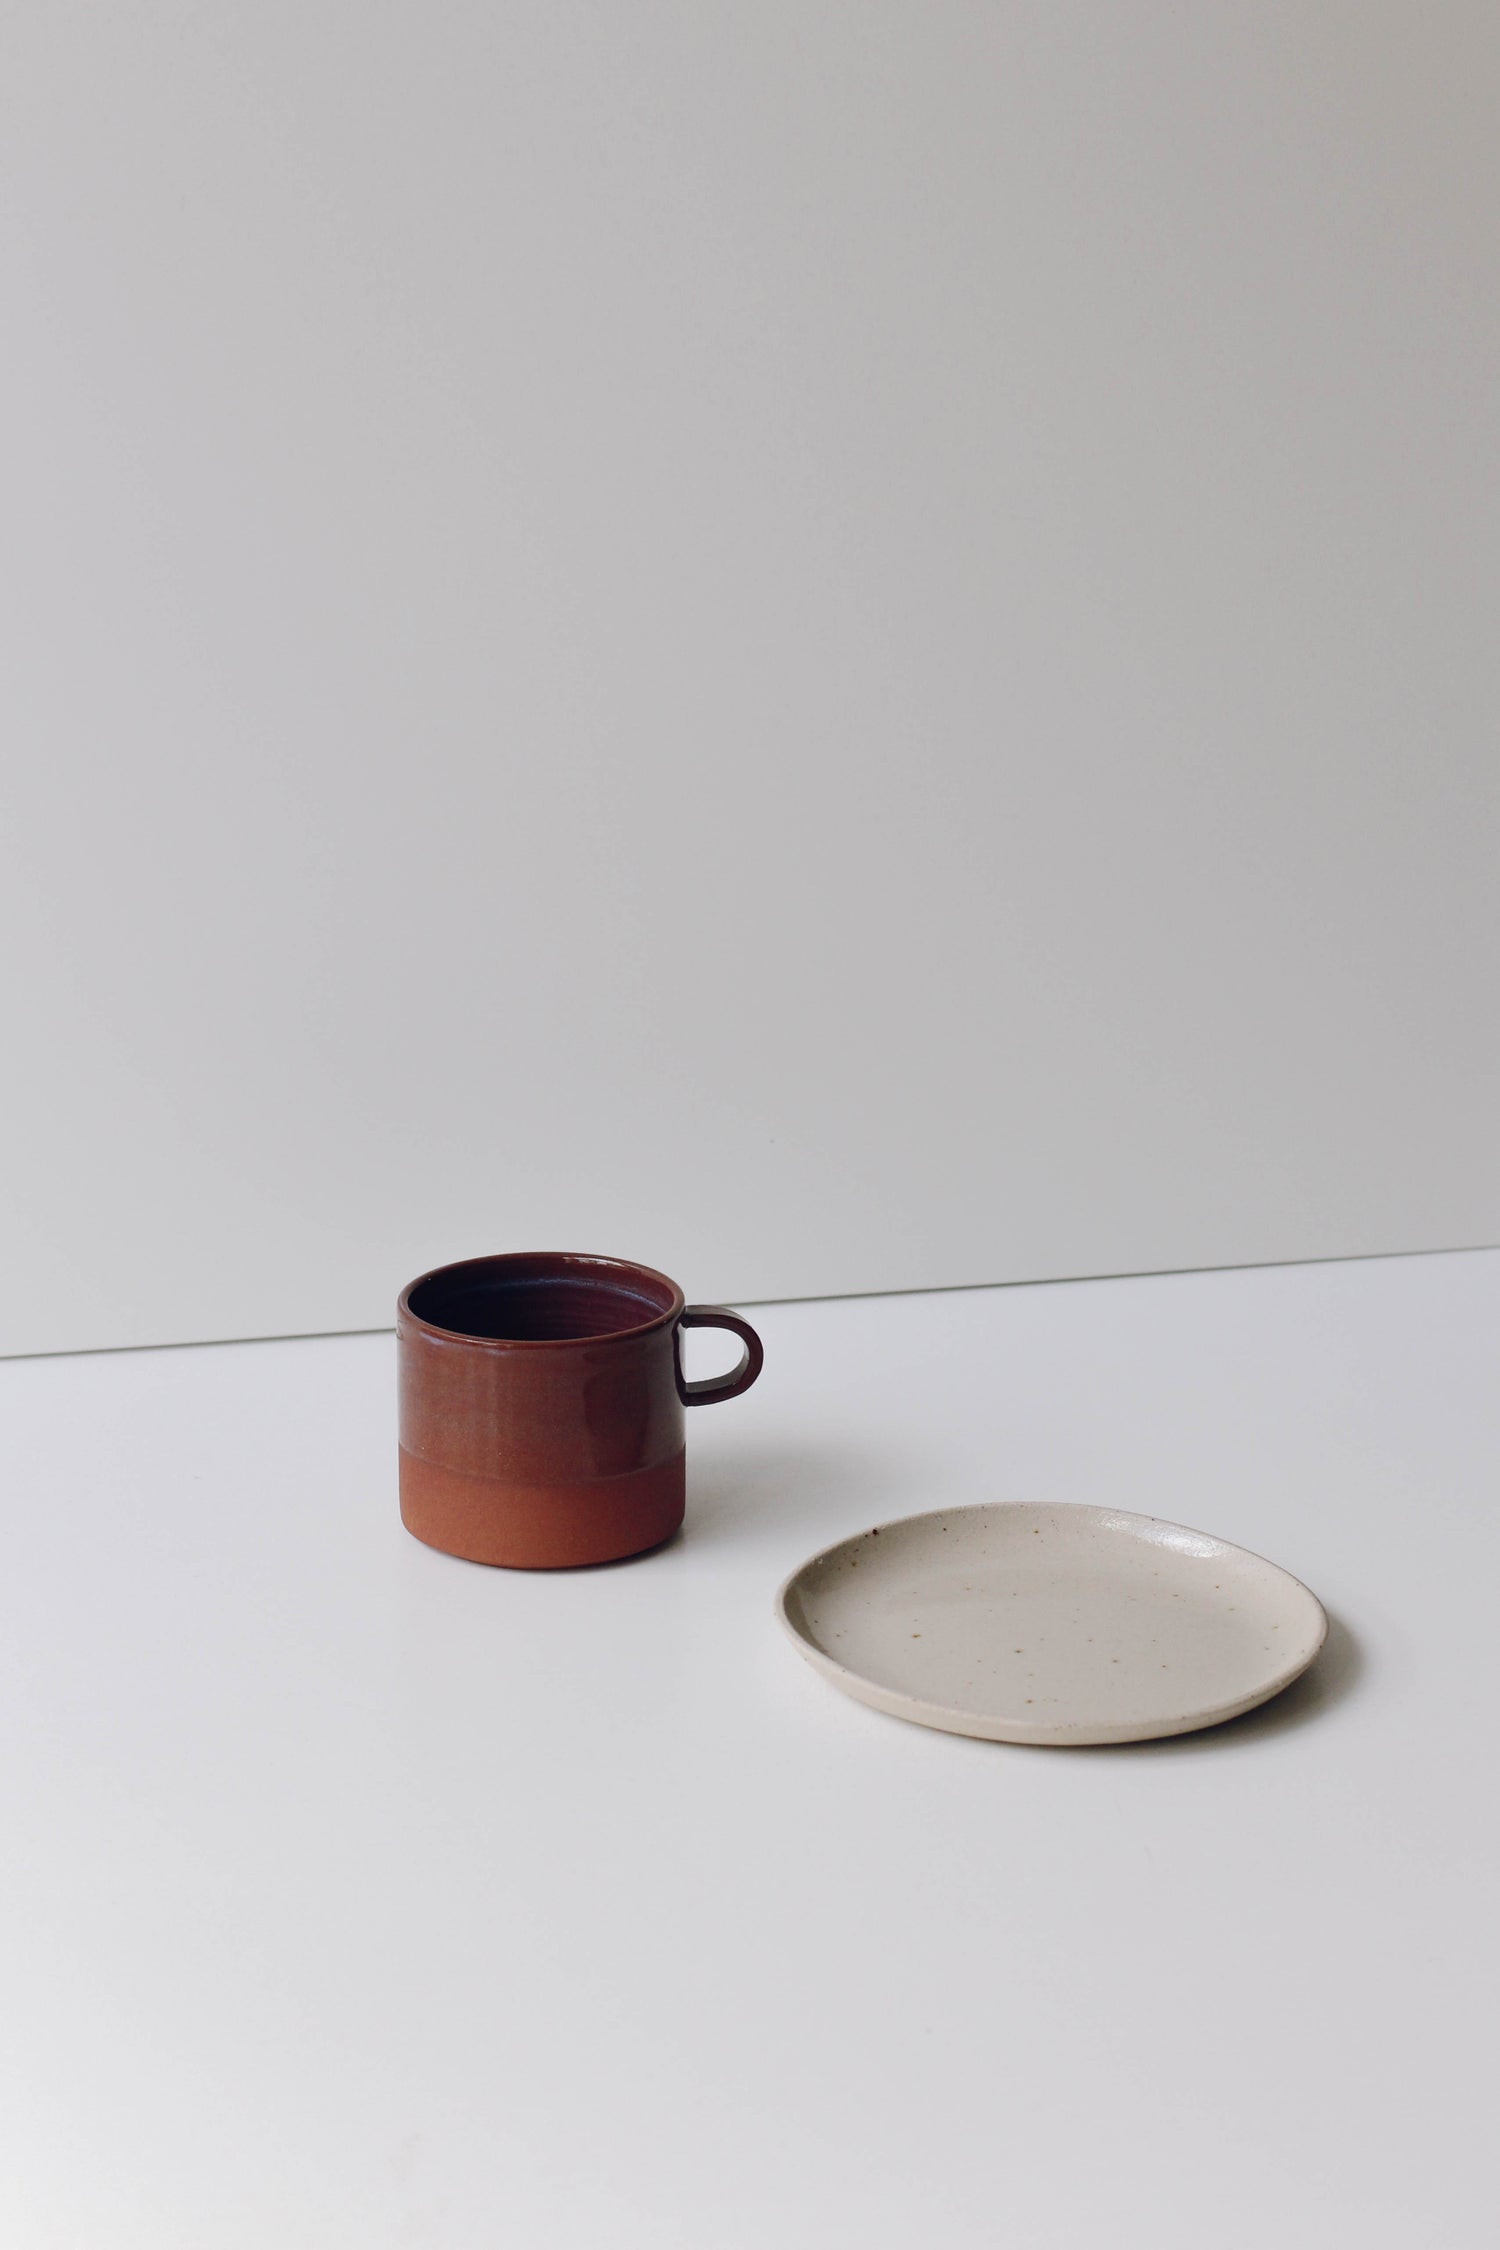 Image of Cup with handle